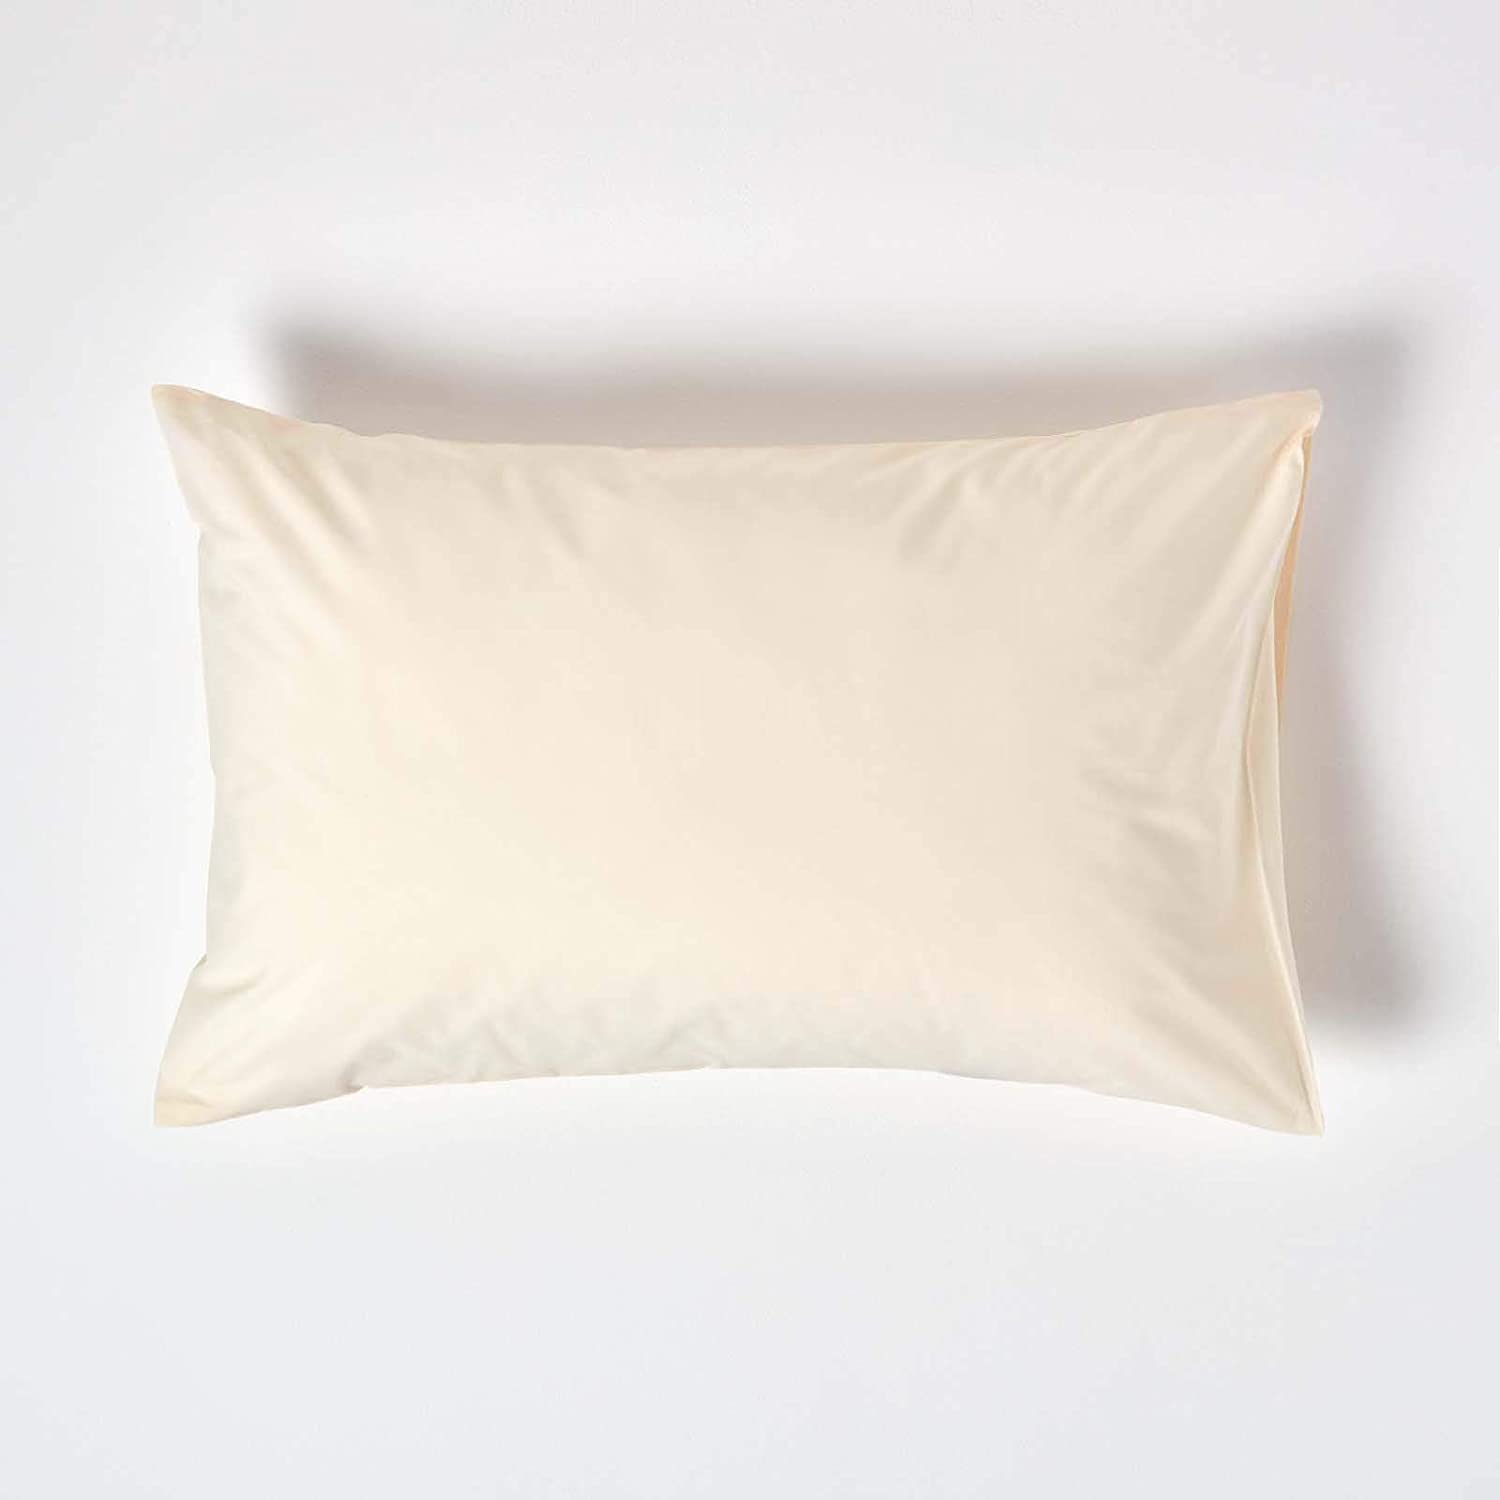 HOMESCAPES Cream Pure Egyptian Cotton Pillowcase Standard Size 400 Thread Count Percale Equivalent Housewife Pillow Case